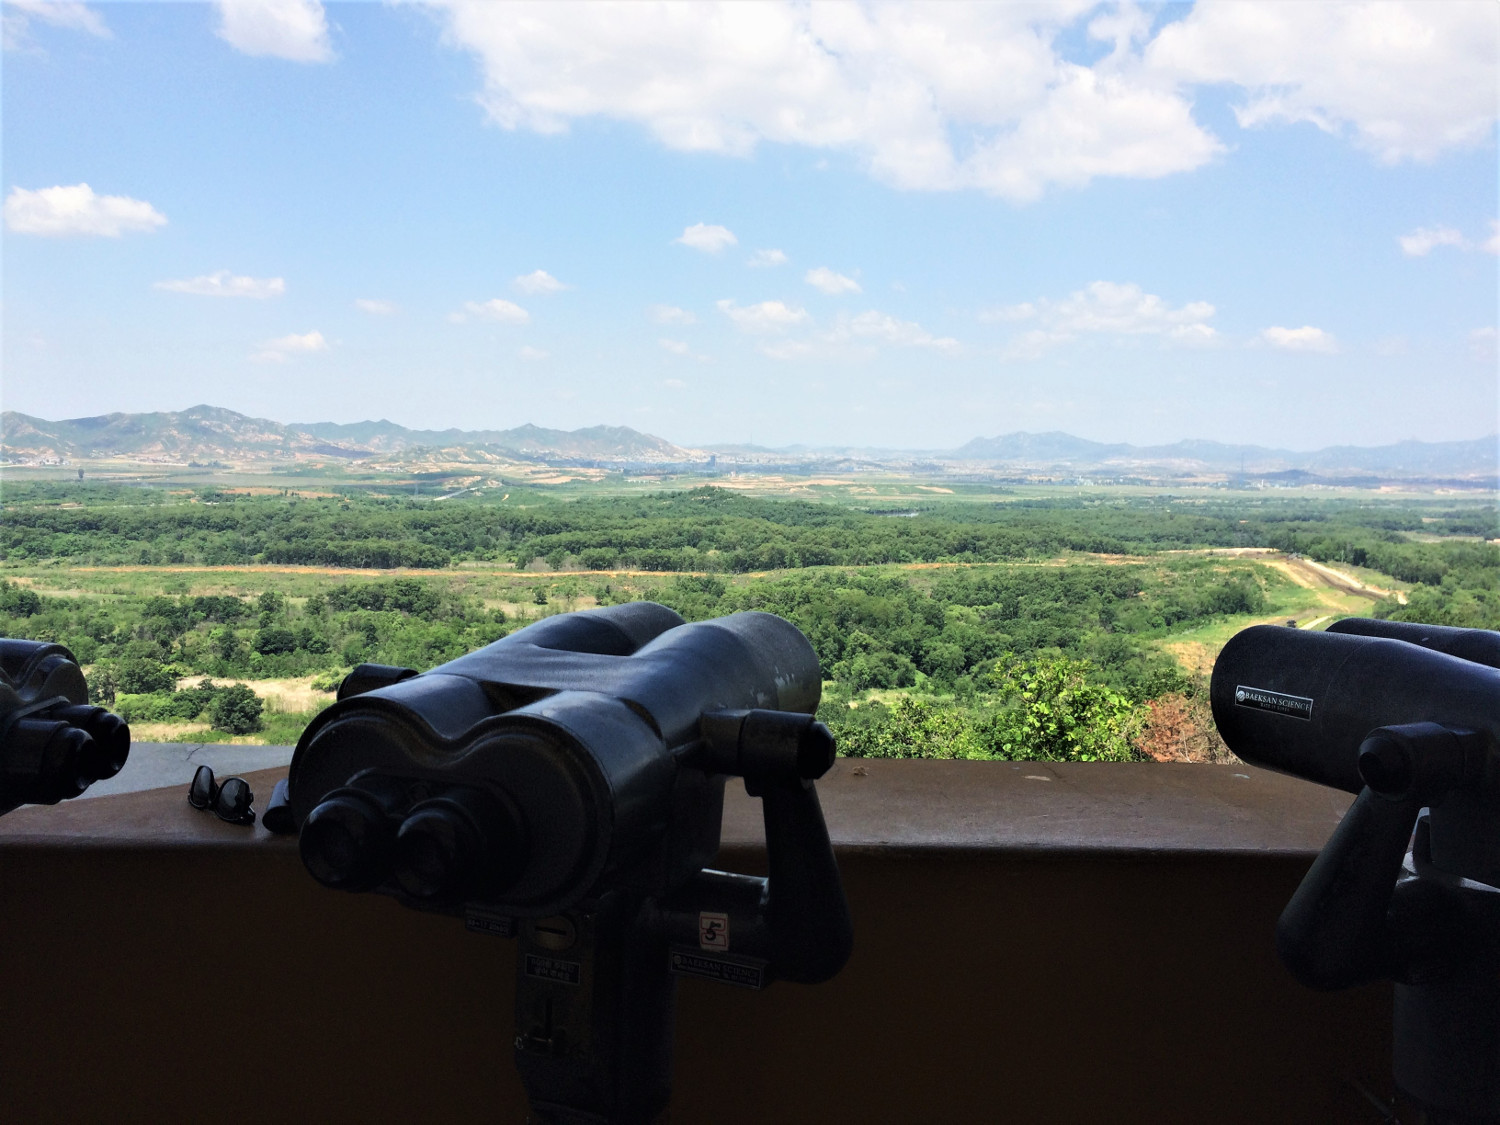 Overlooking the North Korean side - DMZ